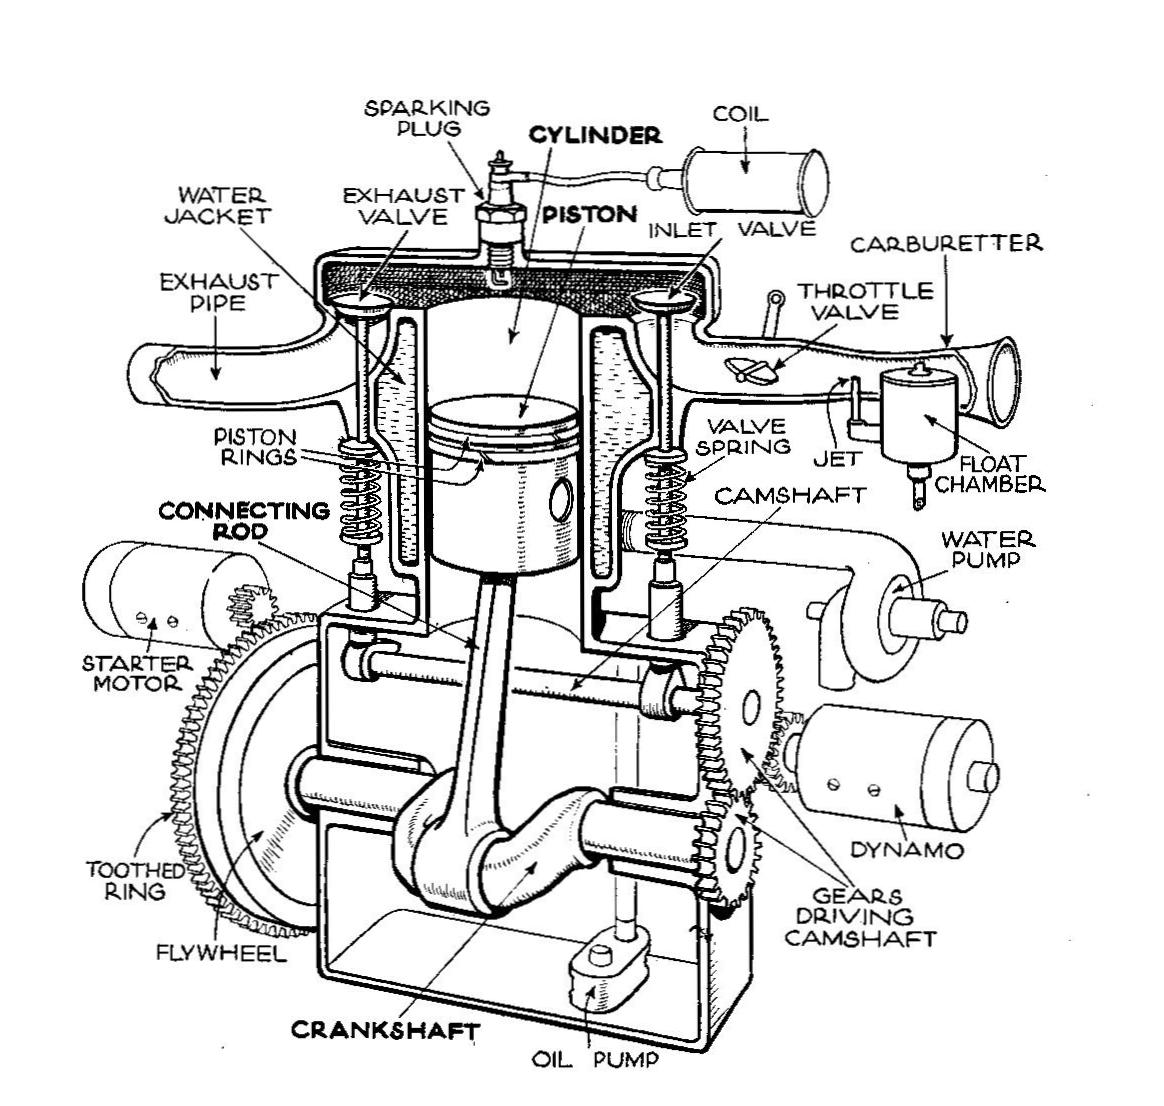 Toyota Previa Engine Diagram Ac Wiring Diagram 1995 Mustang Gt